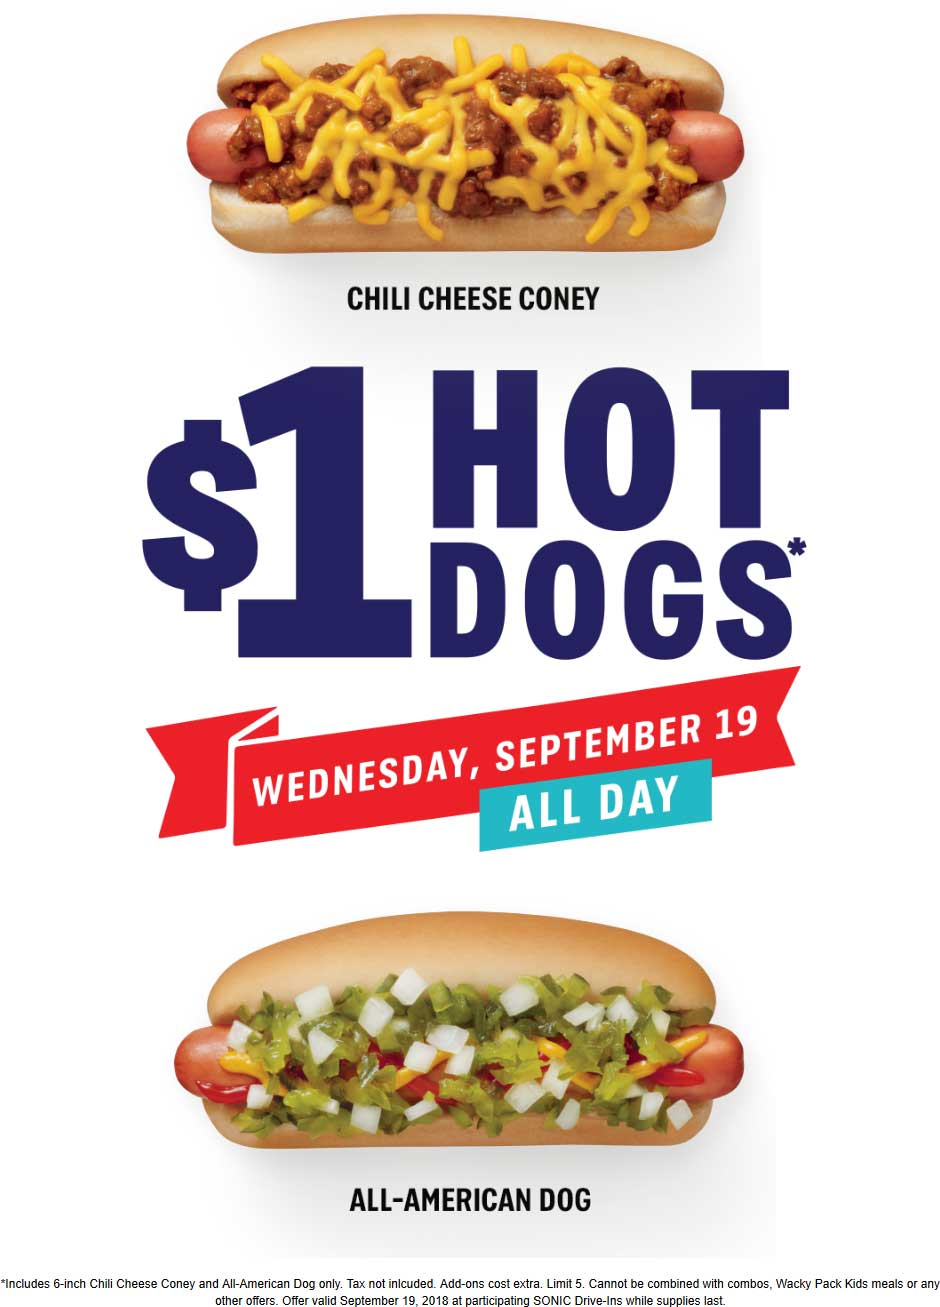 Sonic Drive-In Coupon May 2020 $1 hot dogs today at Sonic Drive-In restaurants